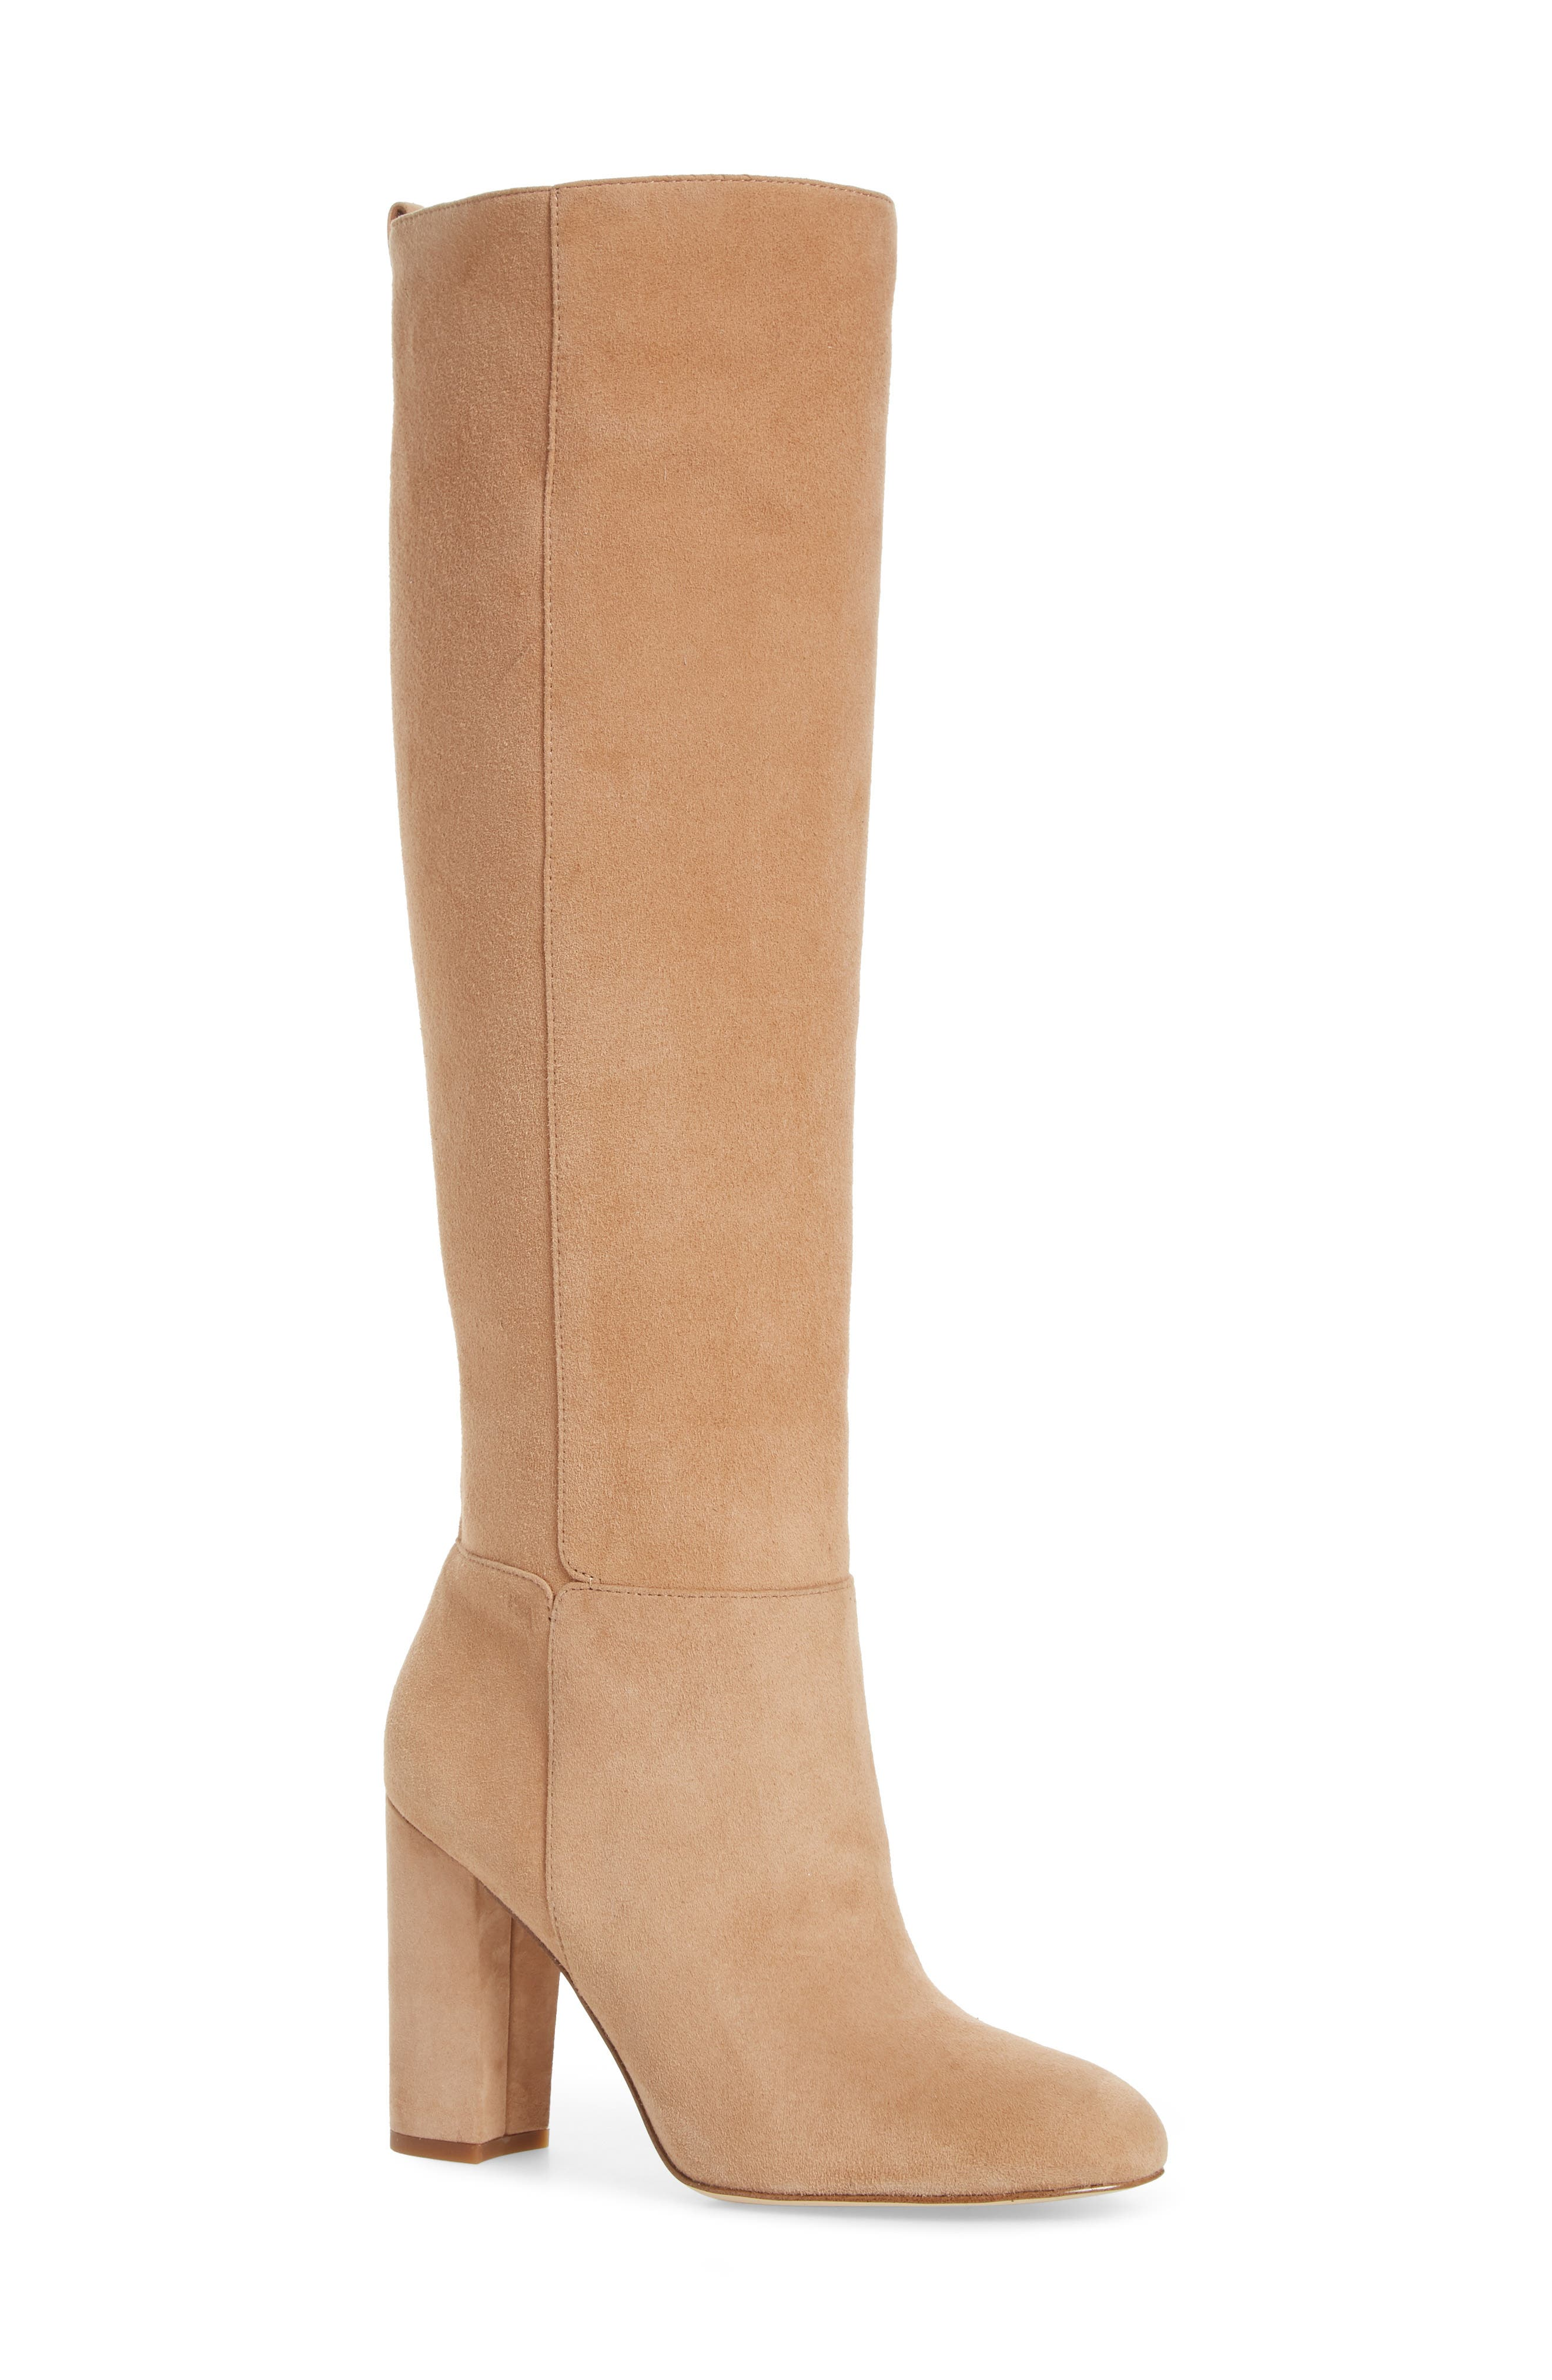 Caprice Knee-High Boot,                             Main thumbnail 1, color,                             GOLDEN CARAMEL SUEDE